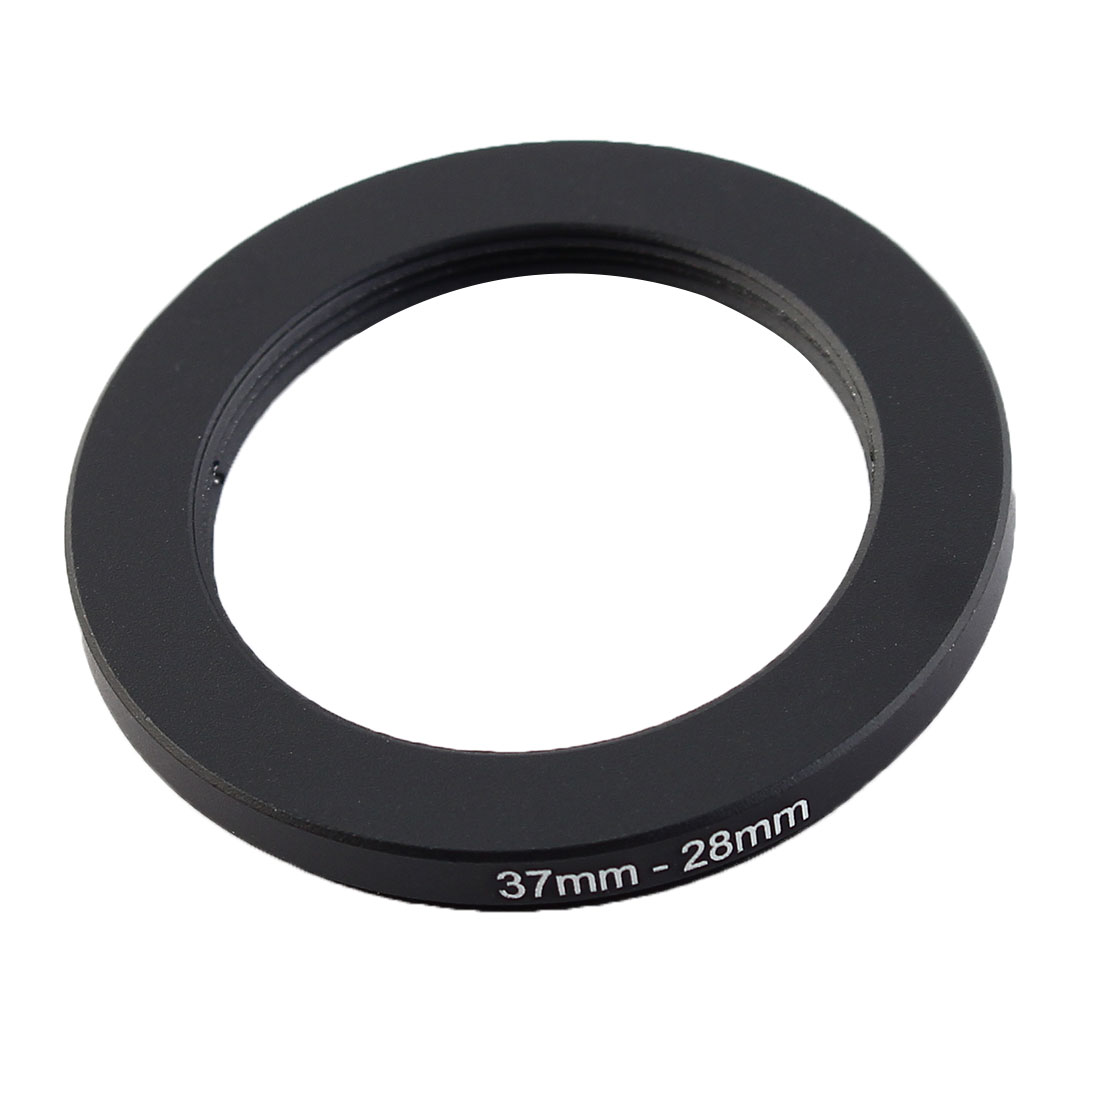 37mm-28mm 37mm to 28mm Black Step Down Ring Adapter for Camera